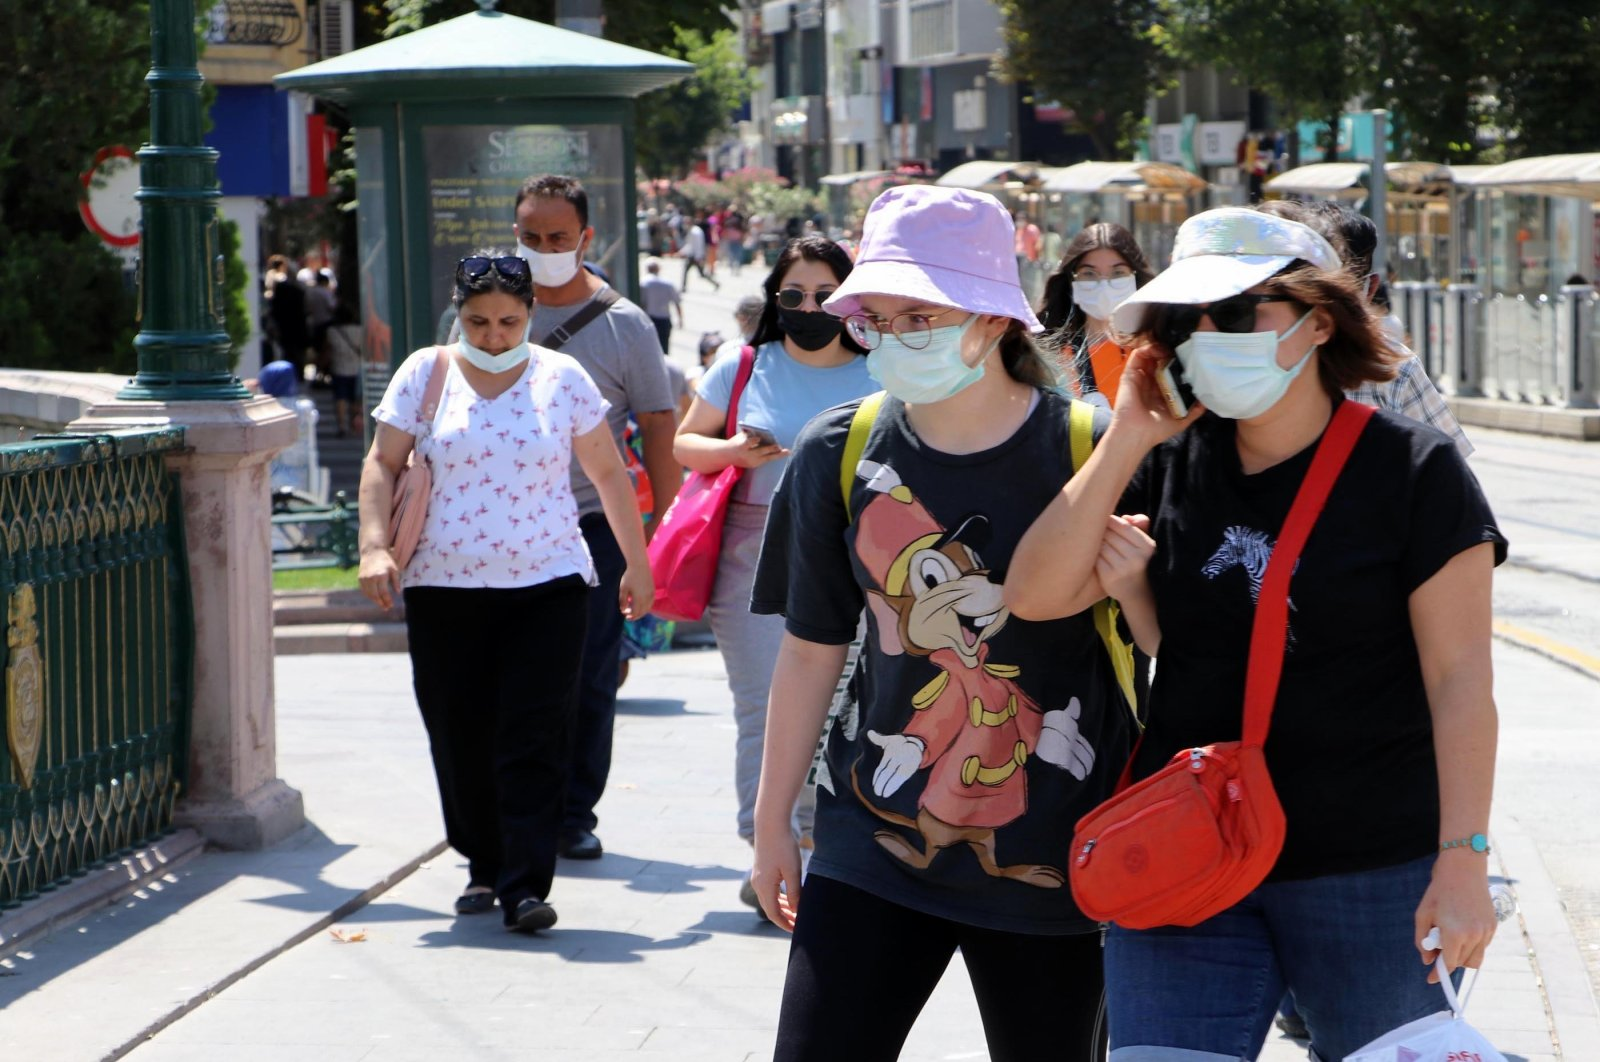 People wearing protective masks against COVID-19 walk on a street in Eskişehir, central Turkey, Aug. 19, 2021. (DHA Photo)